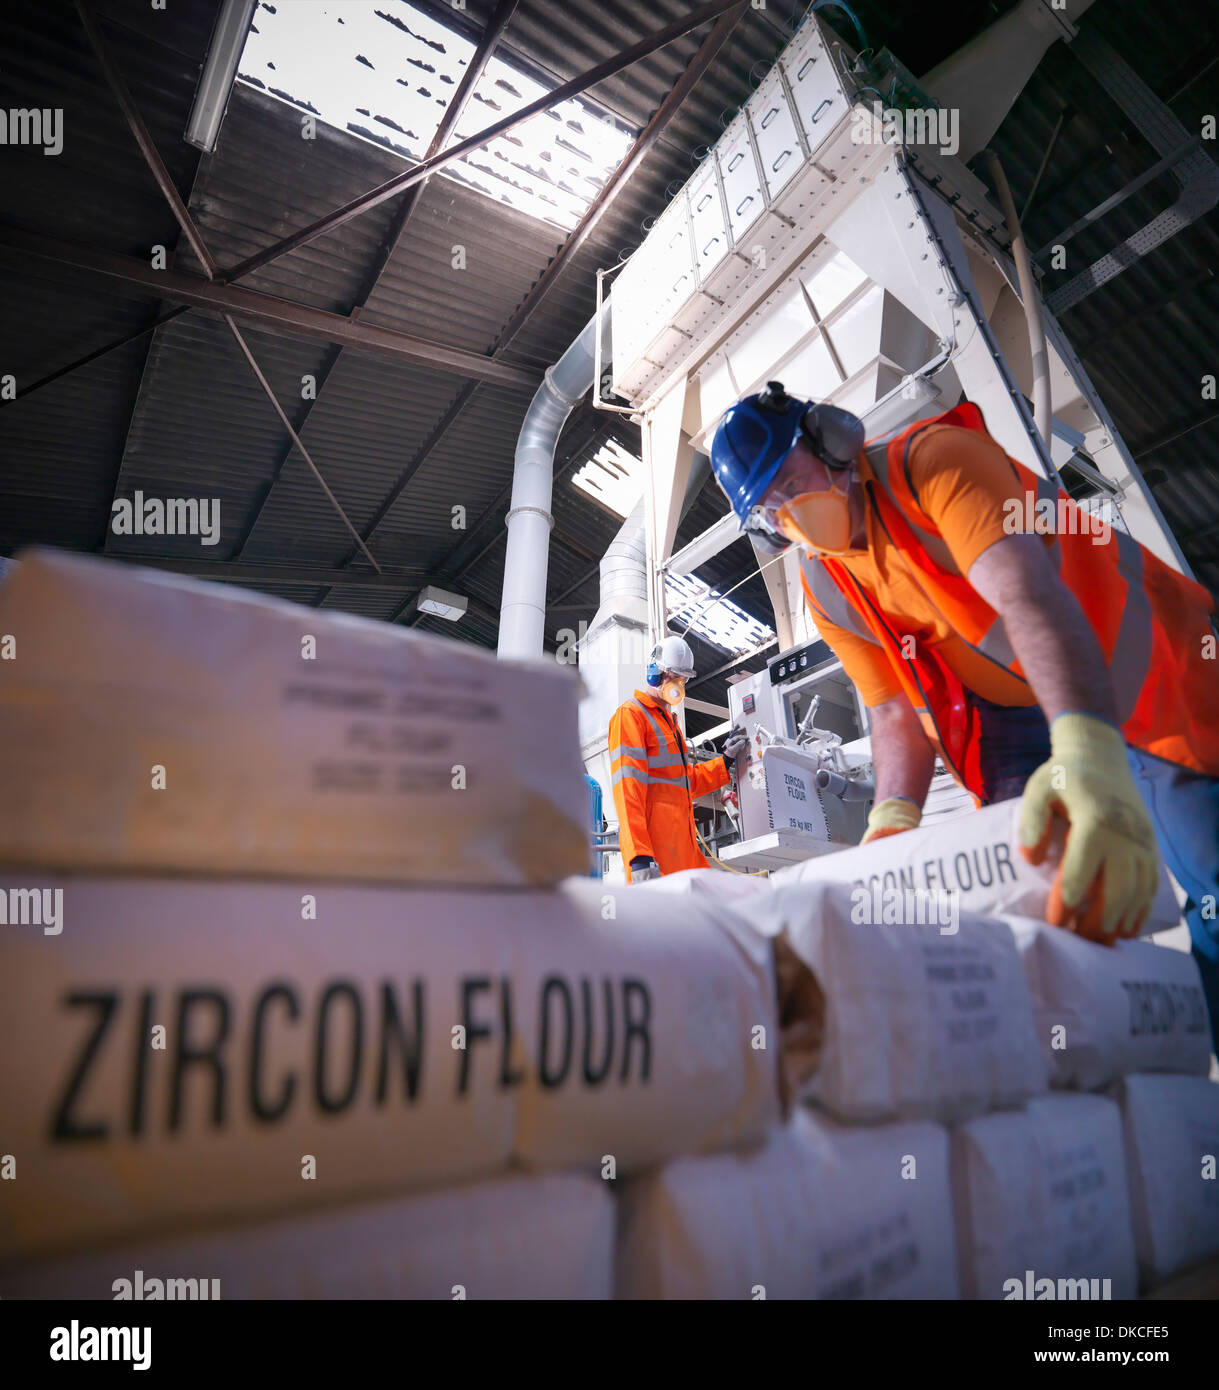 Workers in protective clothing filling zircon flour bags in mill, low angle view - Stock Image